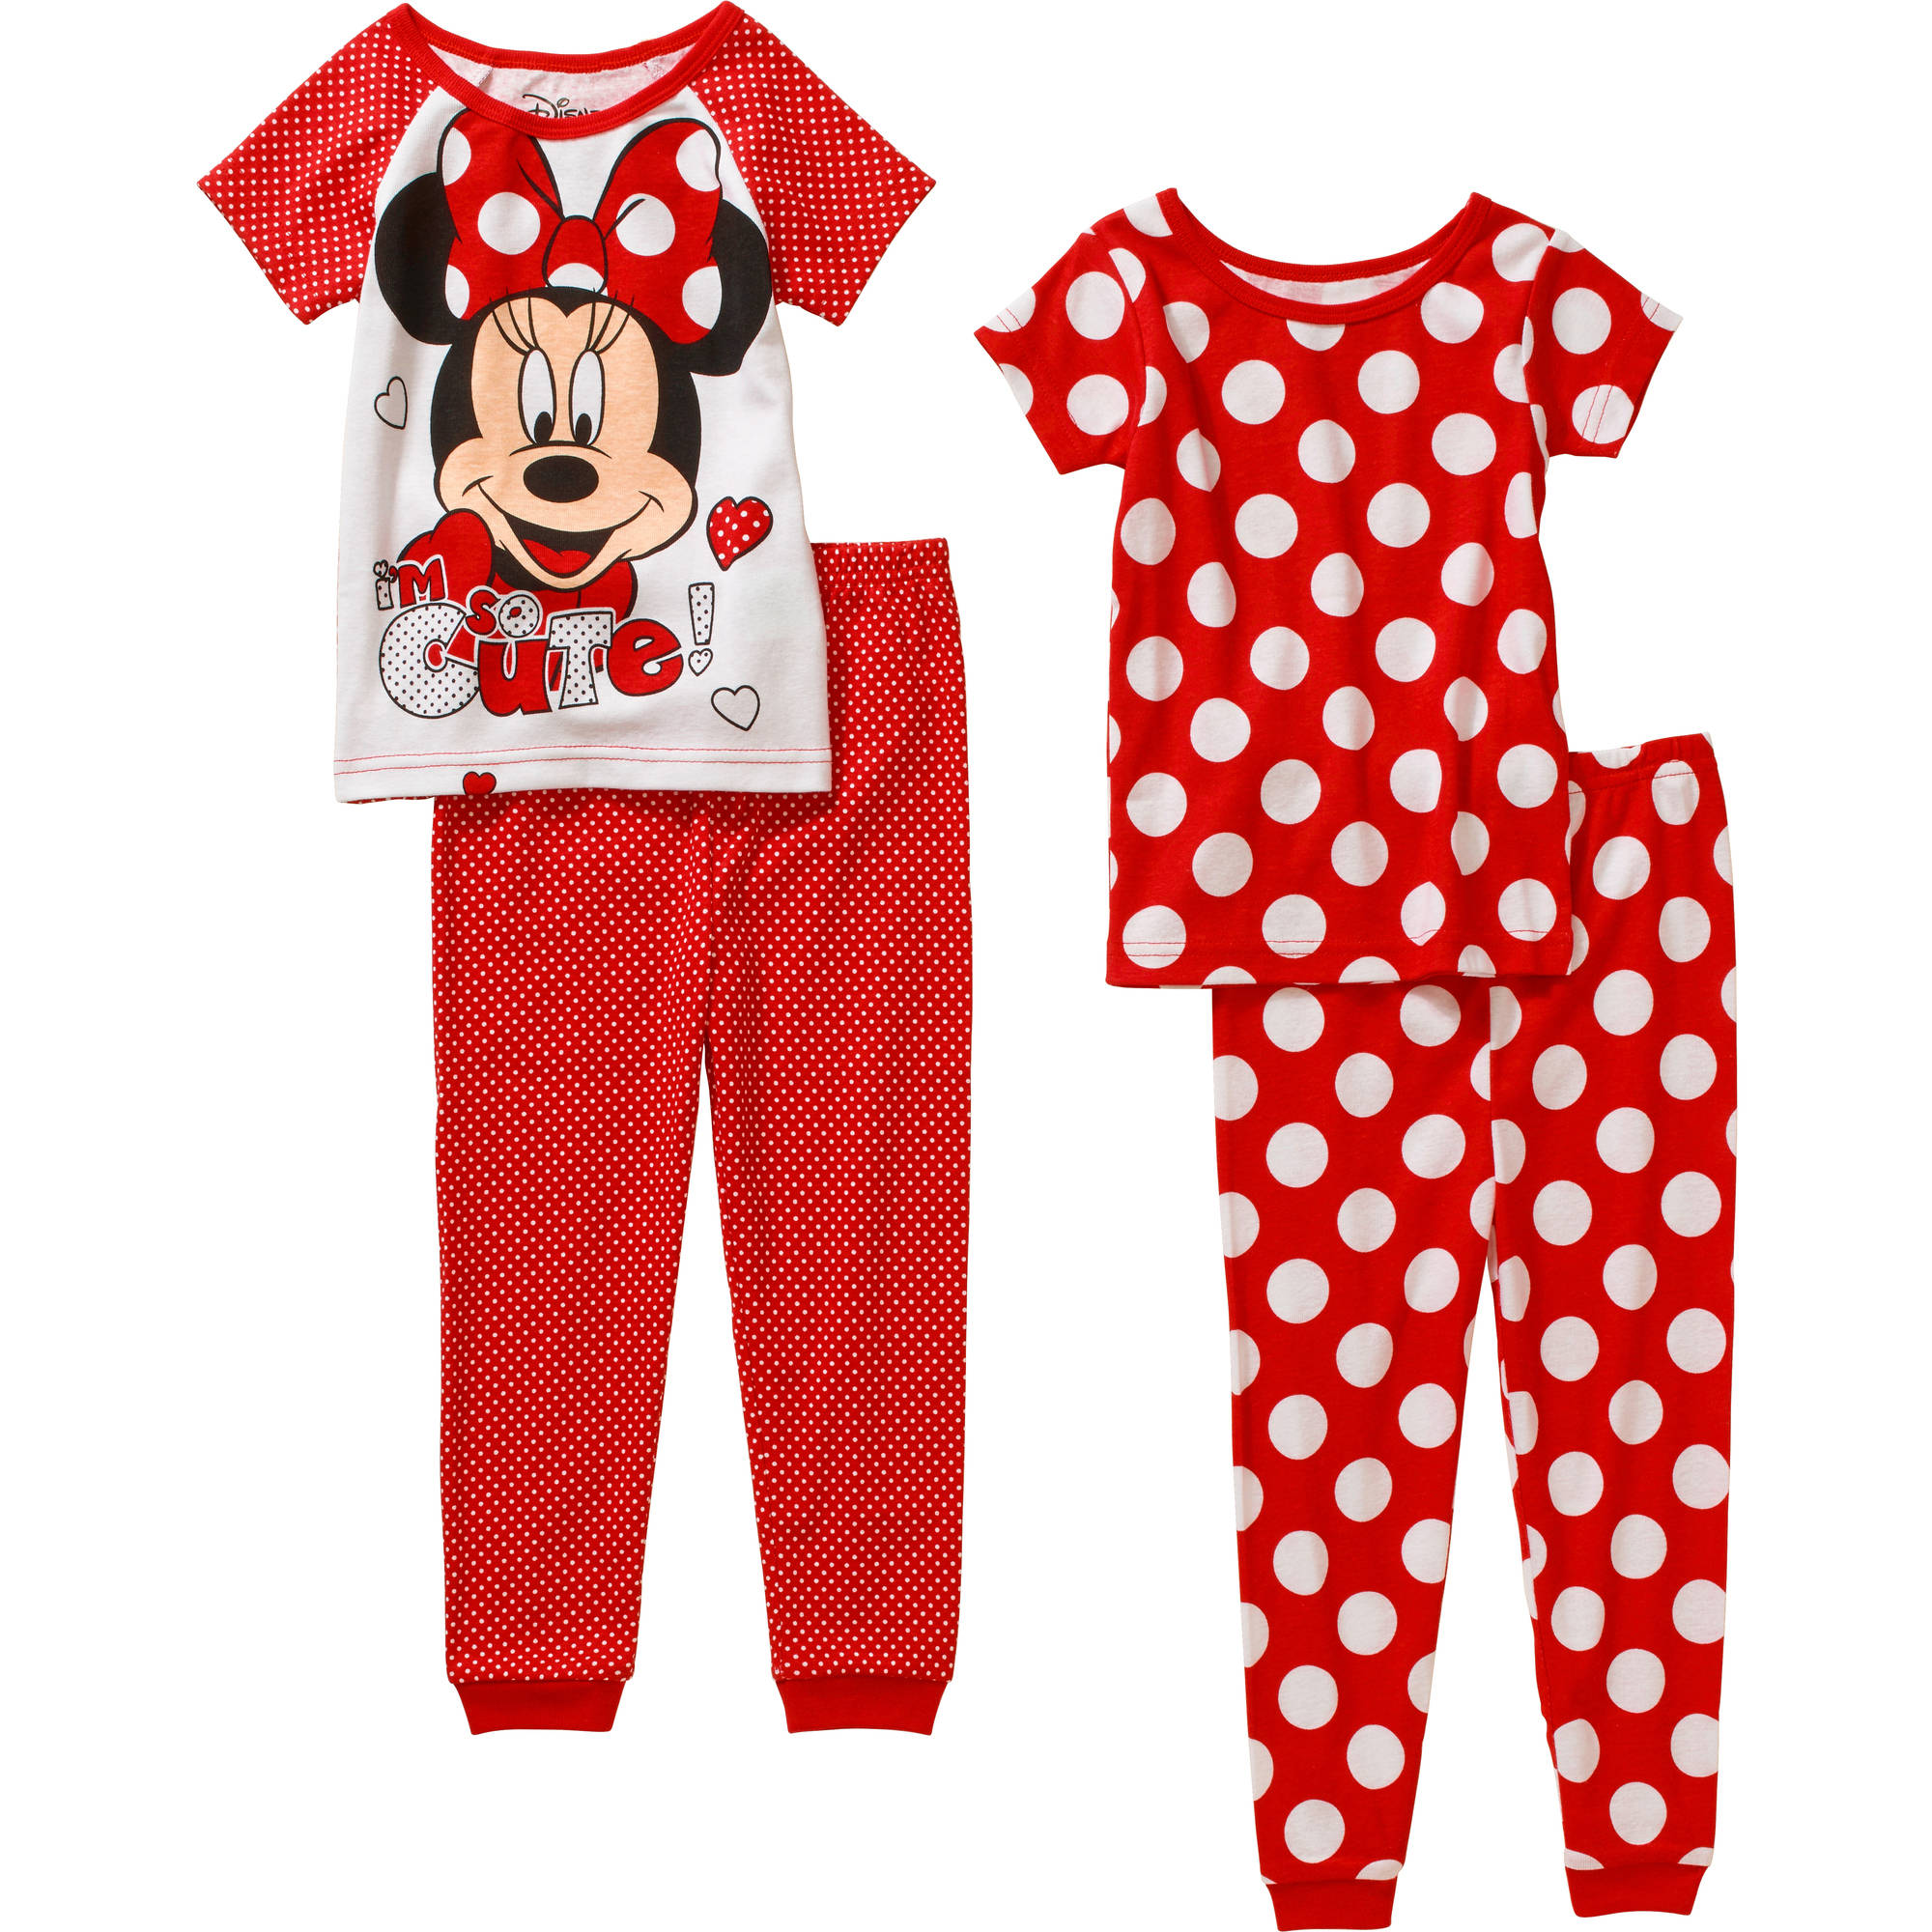 Minnie Mouse Toddler Girl Cotton Tight Fit Short Sleeve PJ Set, 4-Pieces